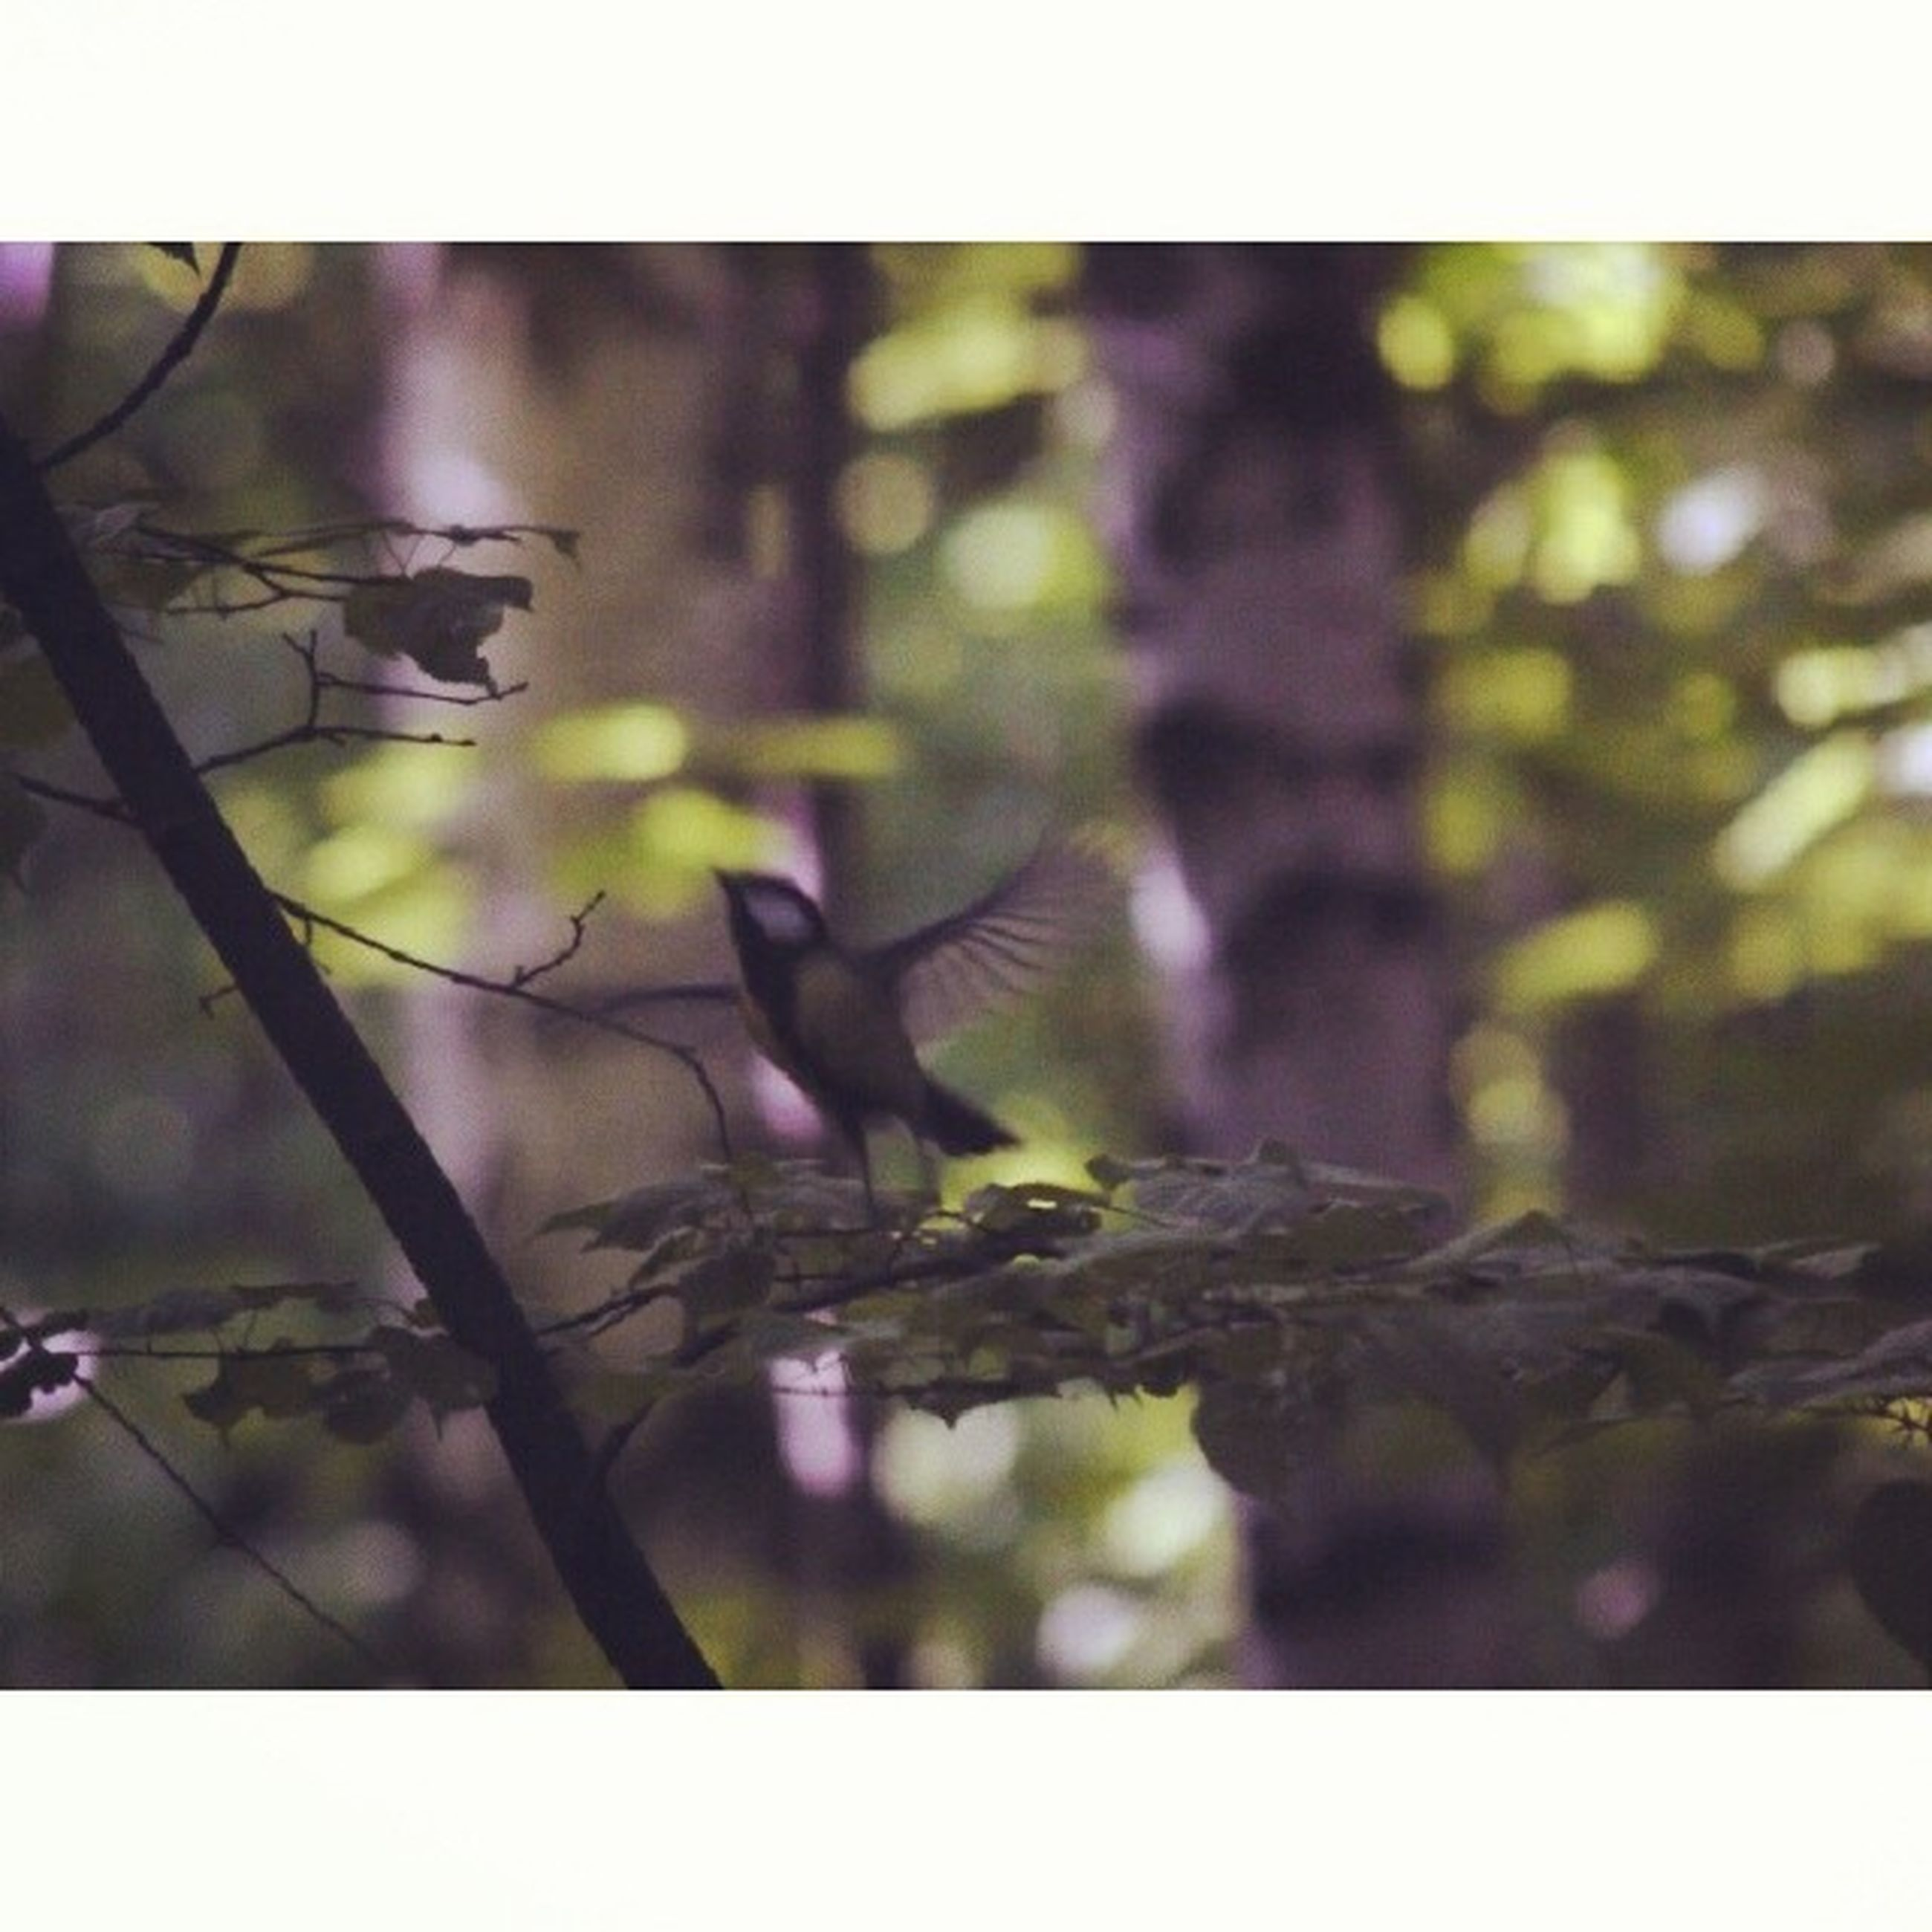 animal themes, animals in the wild, wildlife, transfer print, one animal, auto post production filter, branch, bird, nature, focus on foreground, selective focus, close-up, plant, perching, tree, leaf, growth, forest, day, outdoors